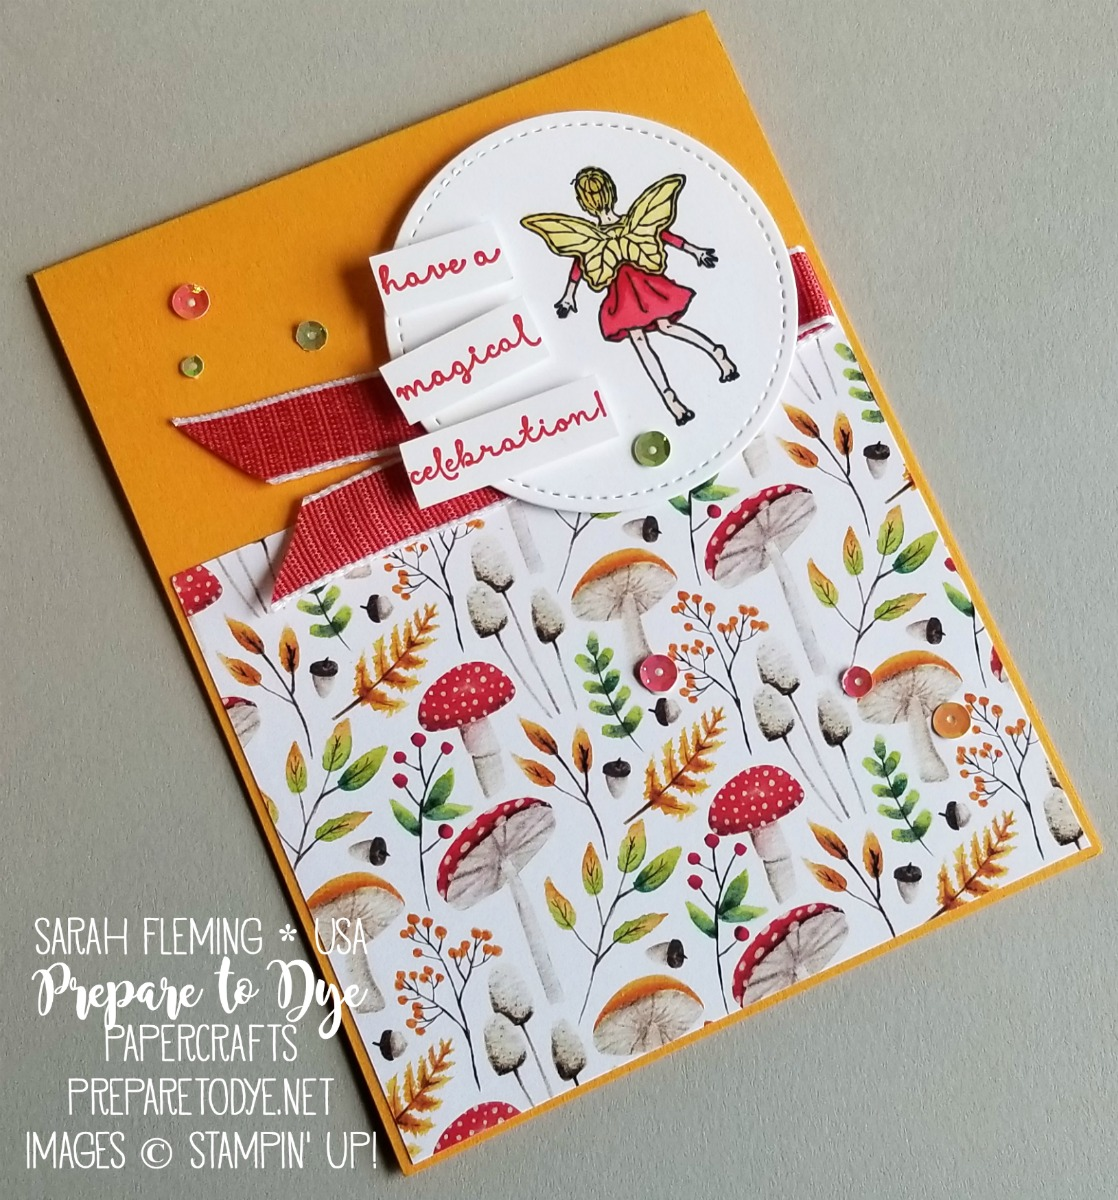 Stampin' Up! handmade birthday or celebration card using Fairy Celebration and FREE Sale-A-Bration Painted Seasons designer series paper - Sarah Fleming - Prepare to Dye Papercrafts